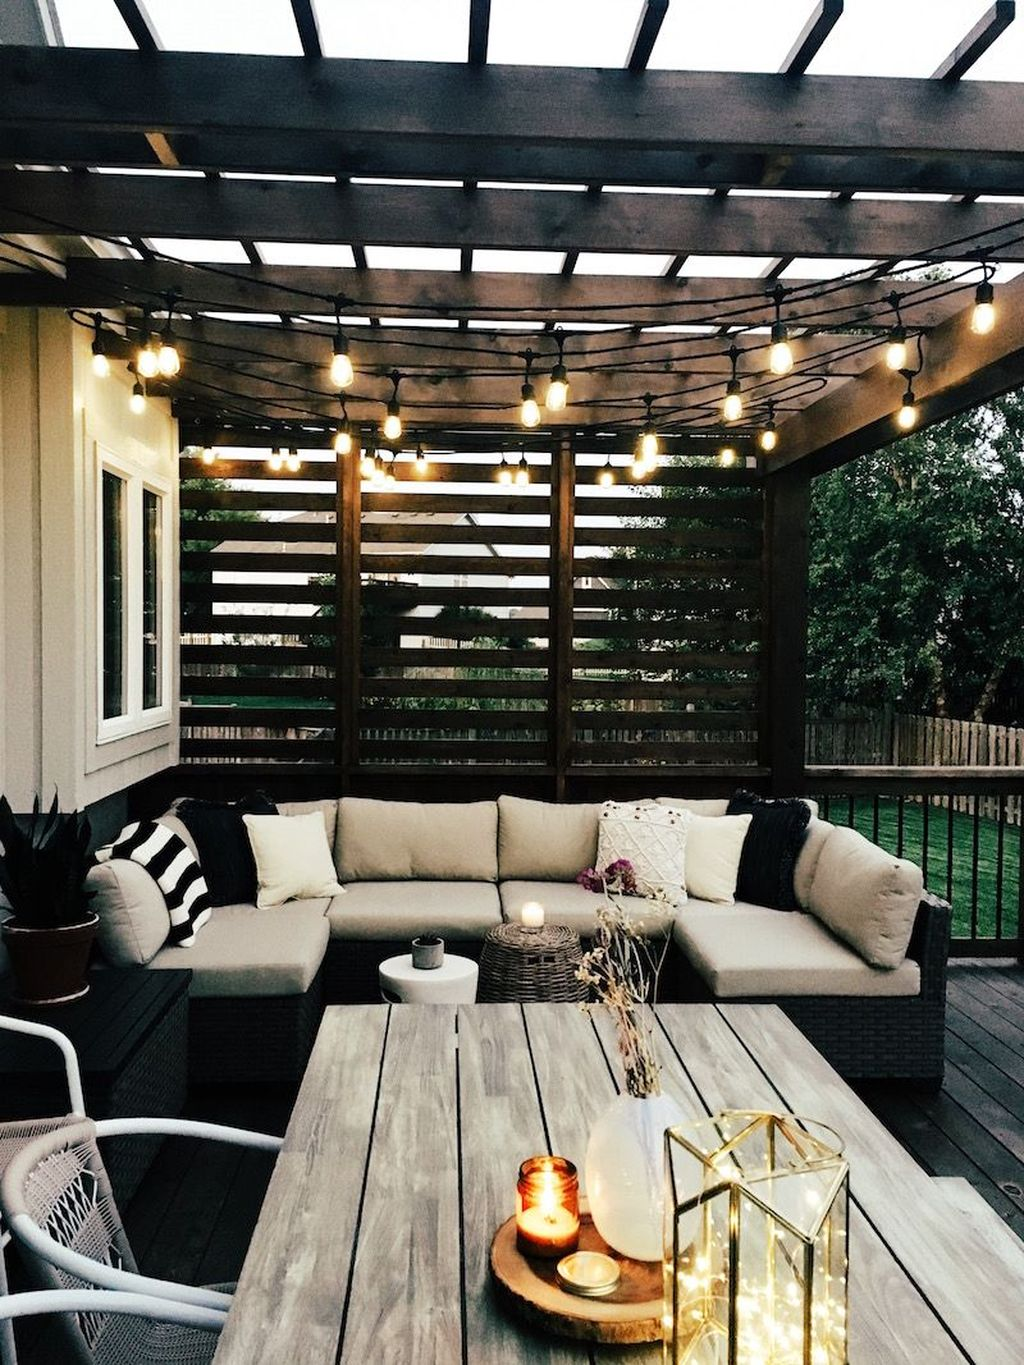 Admirable Cozy Patio Design Ideas To Relaxing On A Sunny Day 37